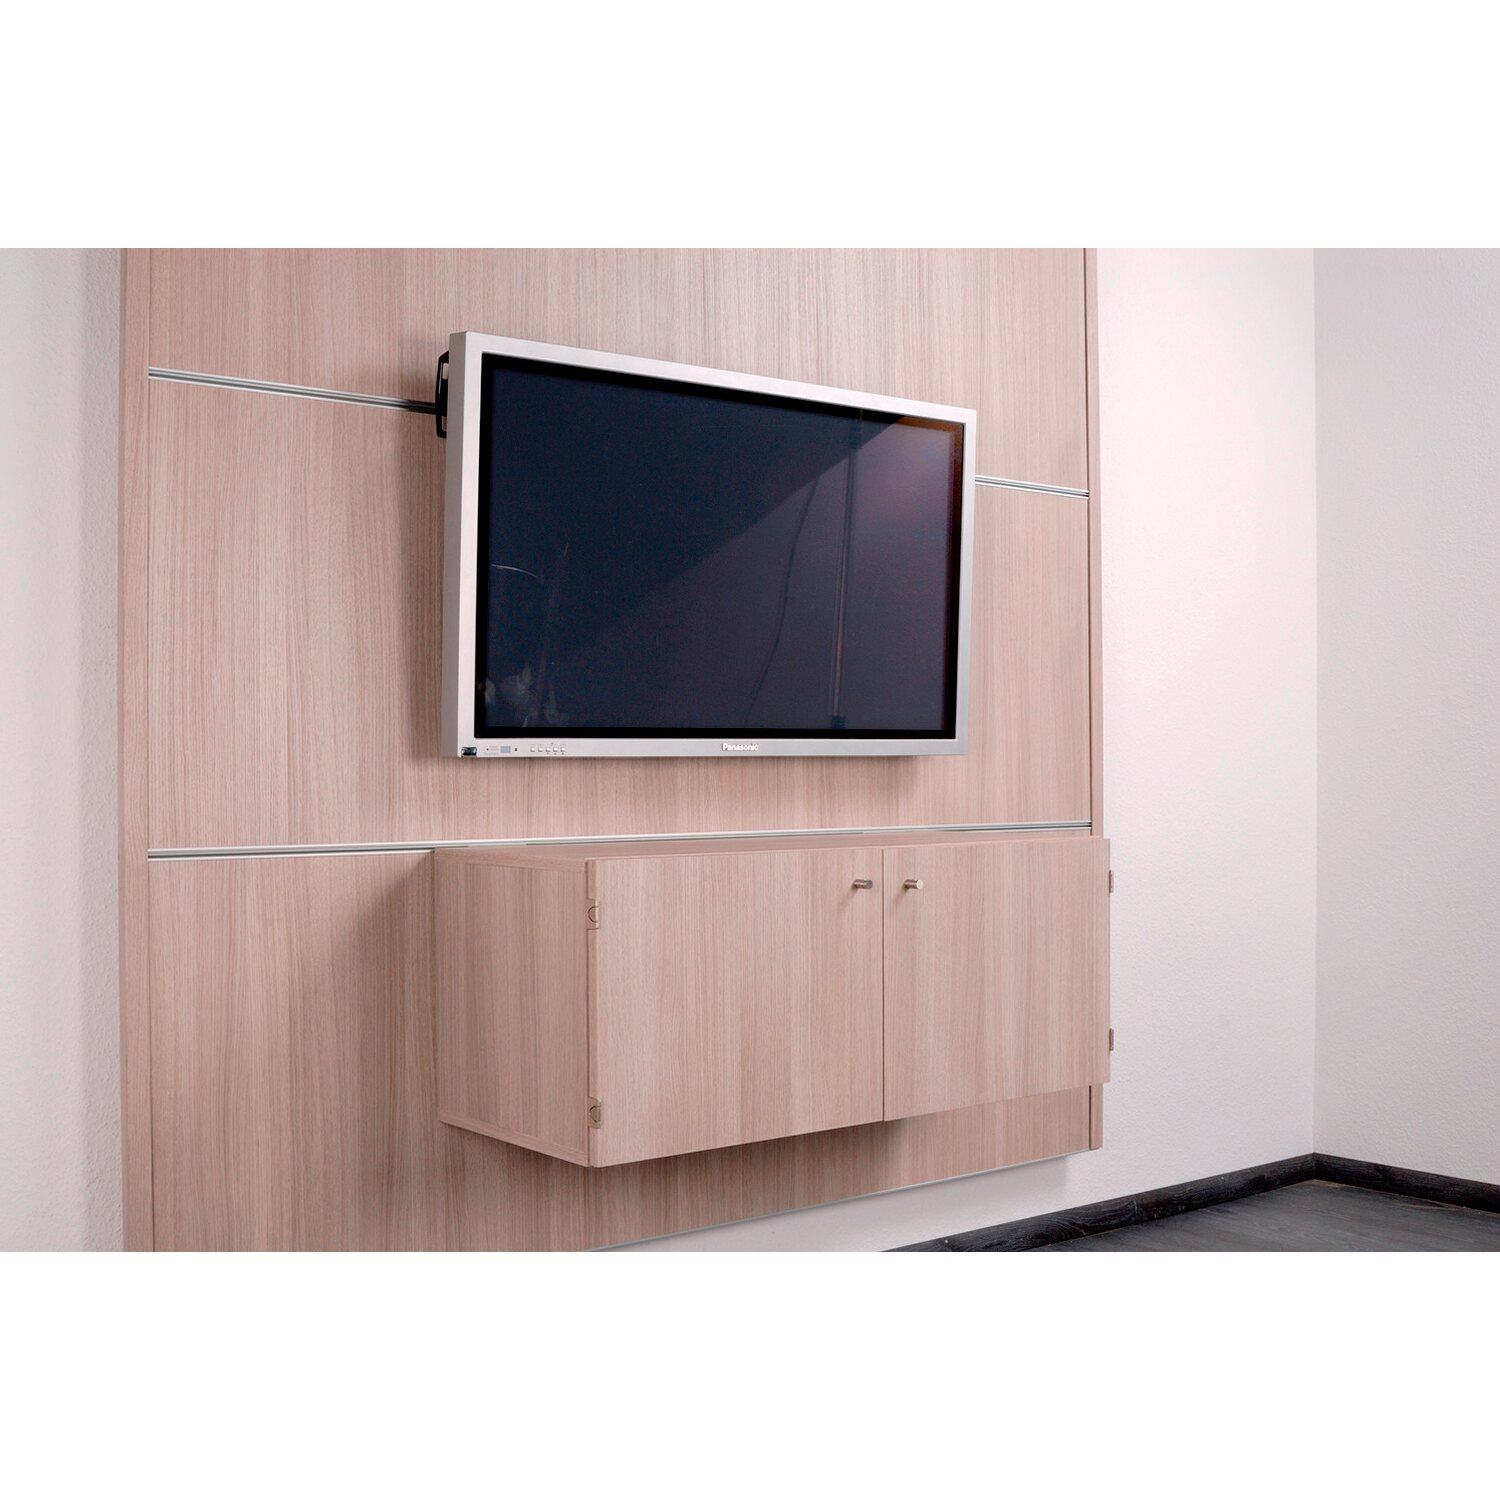 cinewall t ren set 4 granada kaufen bei obi. Black Bedroom Furniture Sets. Home Design Ideas